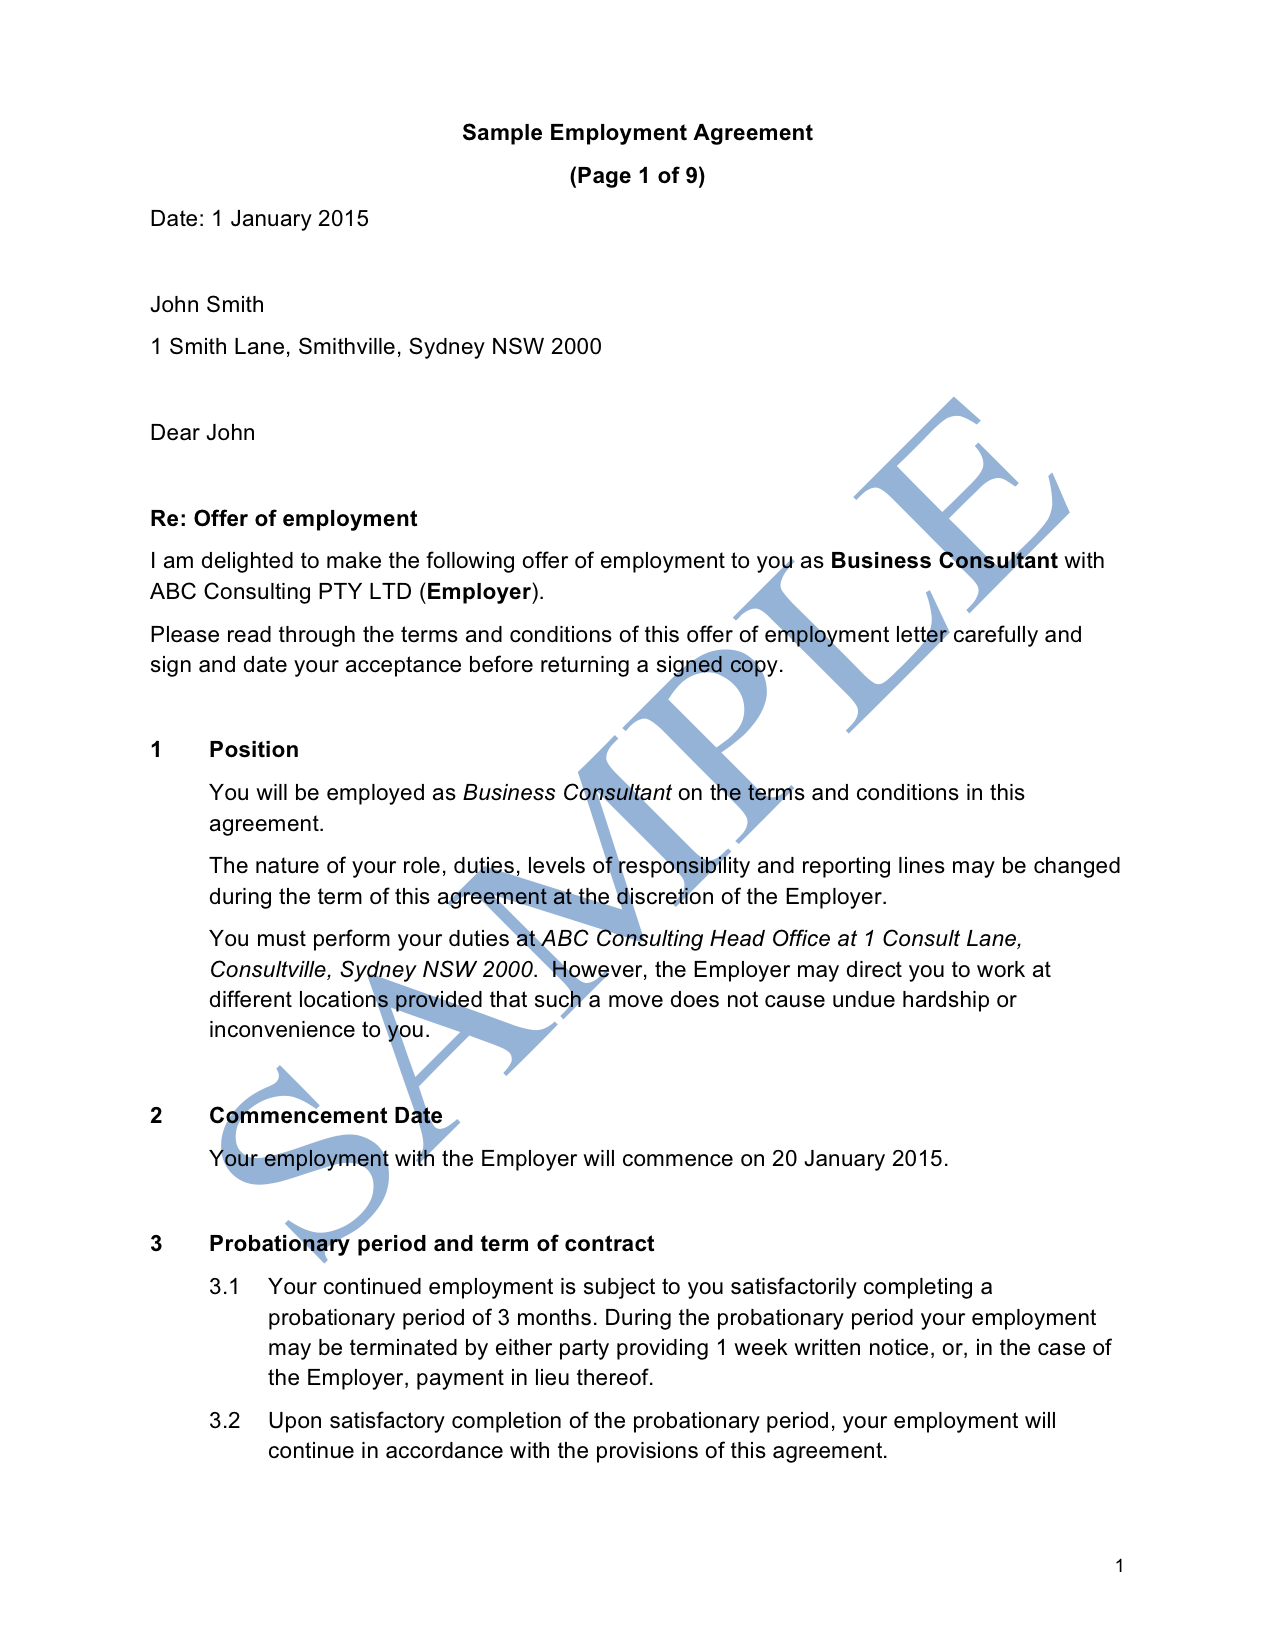 Employment Agreement (Professional Services)